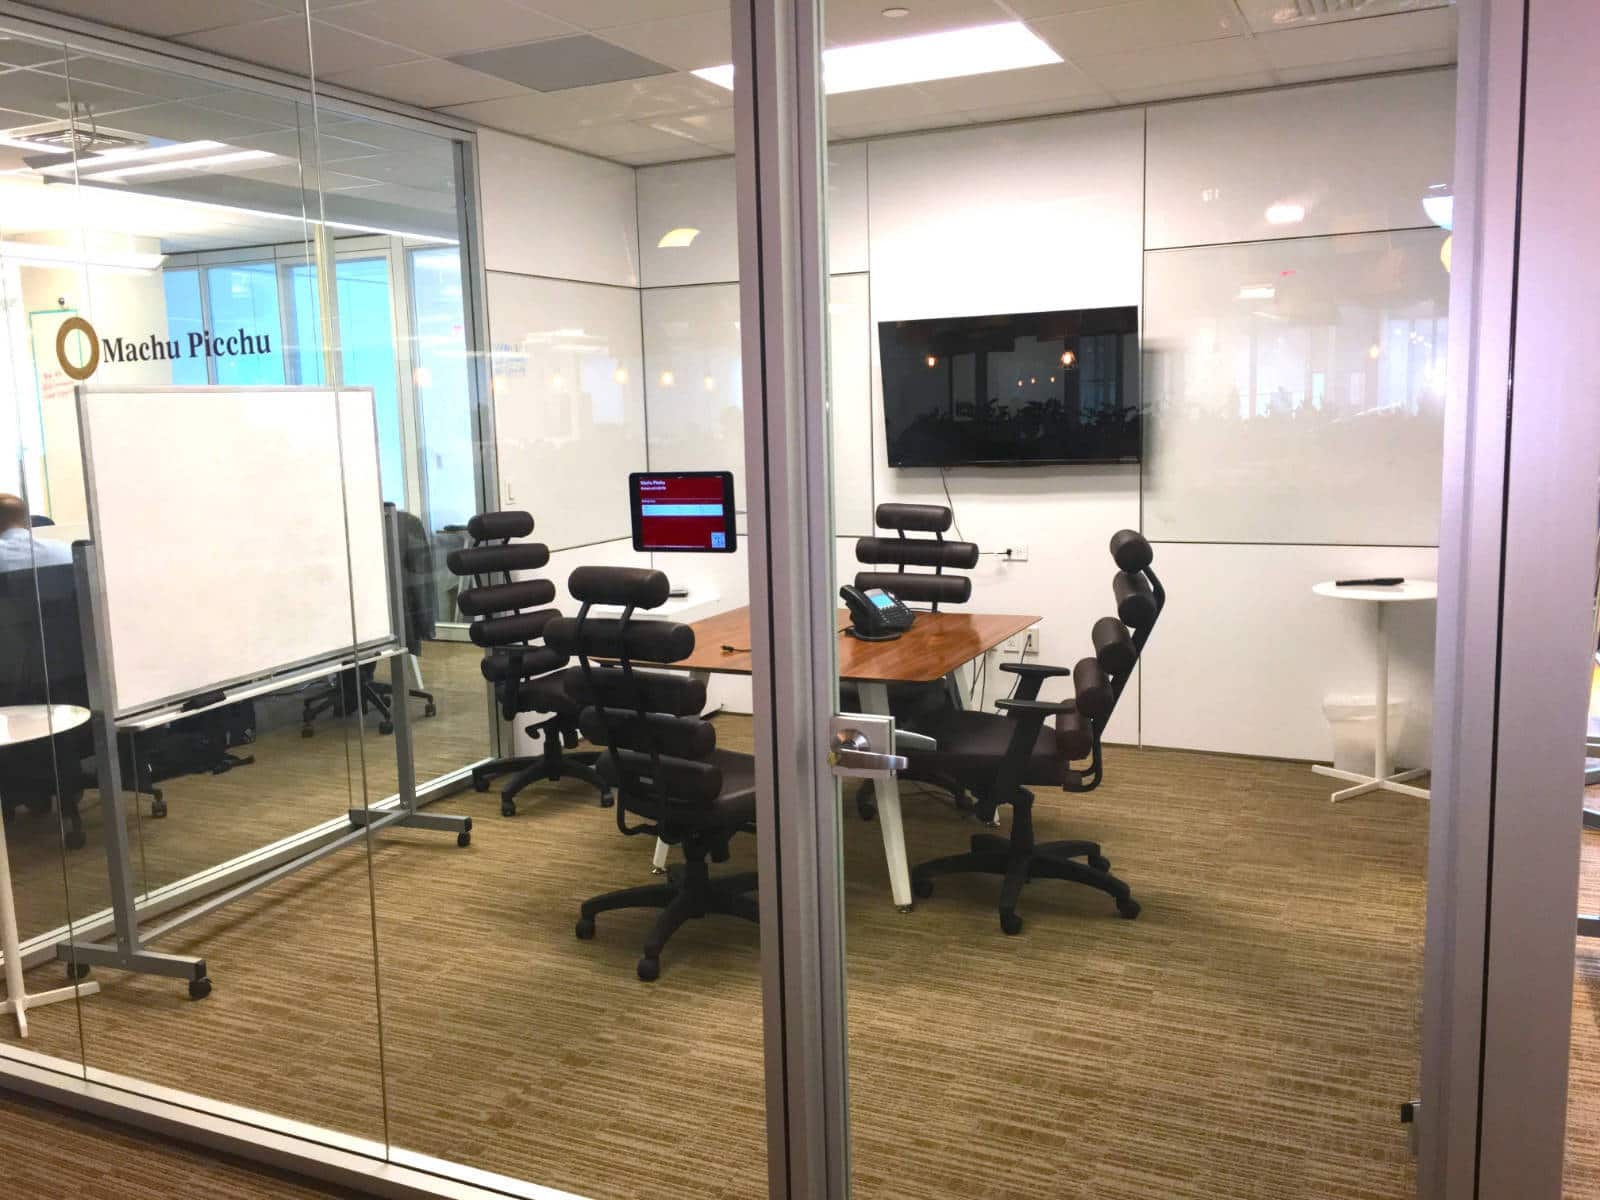 Shot from outside the Machu Picchu meeting room, looking in through the glass walls. Focus is on the square table with 4 modern, black chairs surrounding the table and the flat screen monitor on the walls.